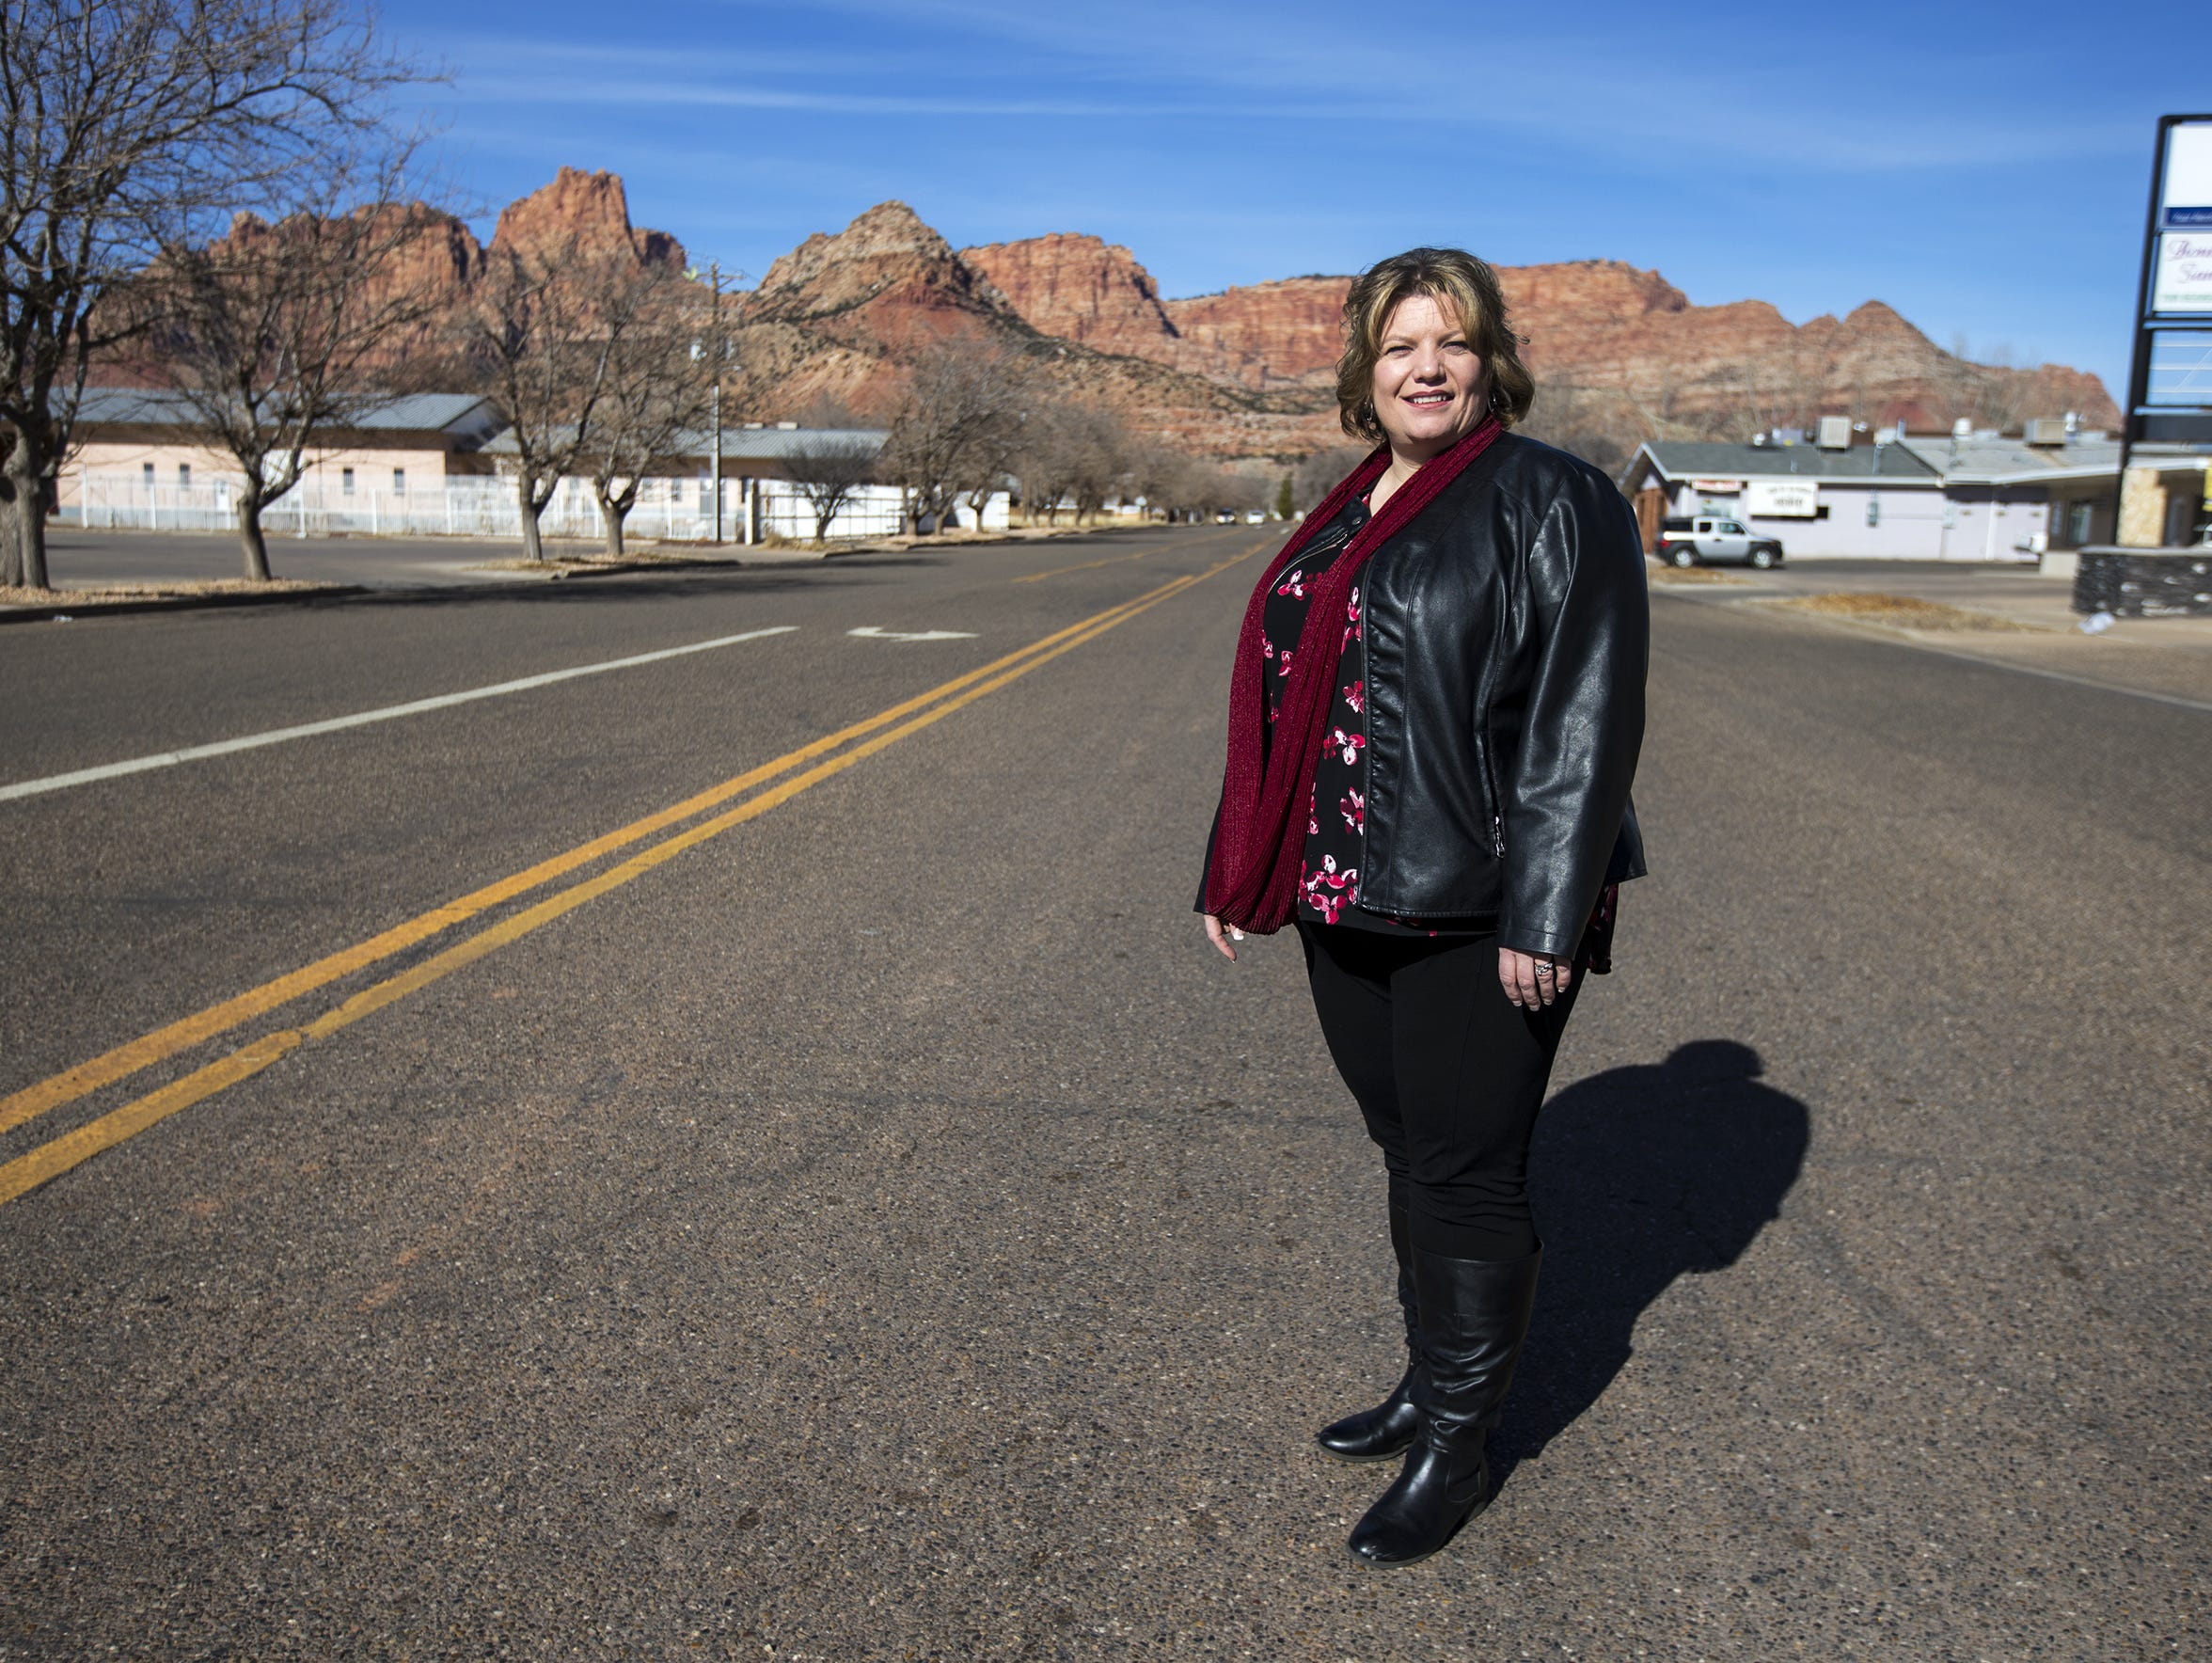 Donia Jessop, the current mayor of Hildale, Utah, is